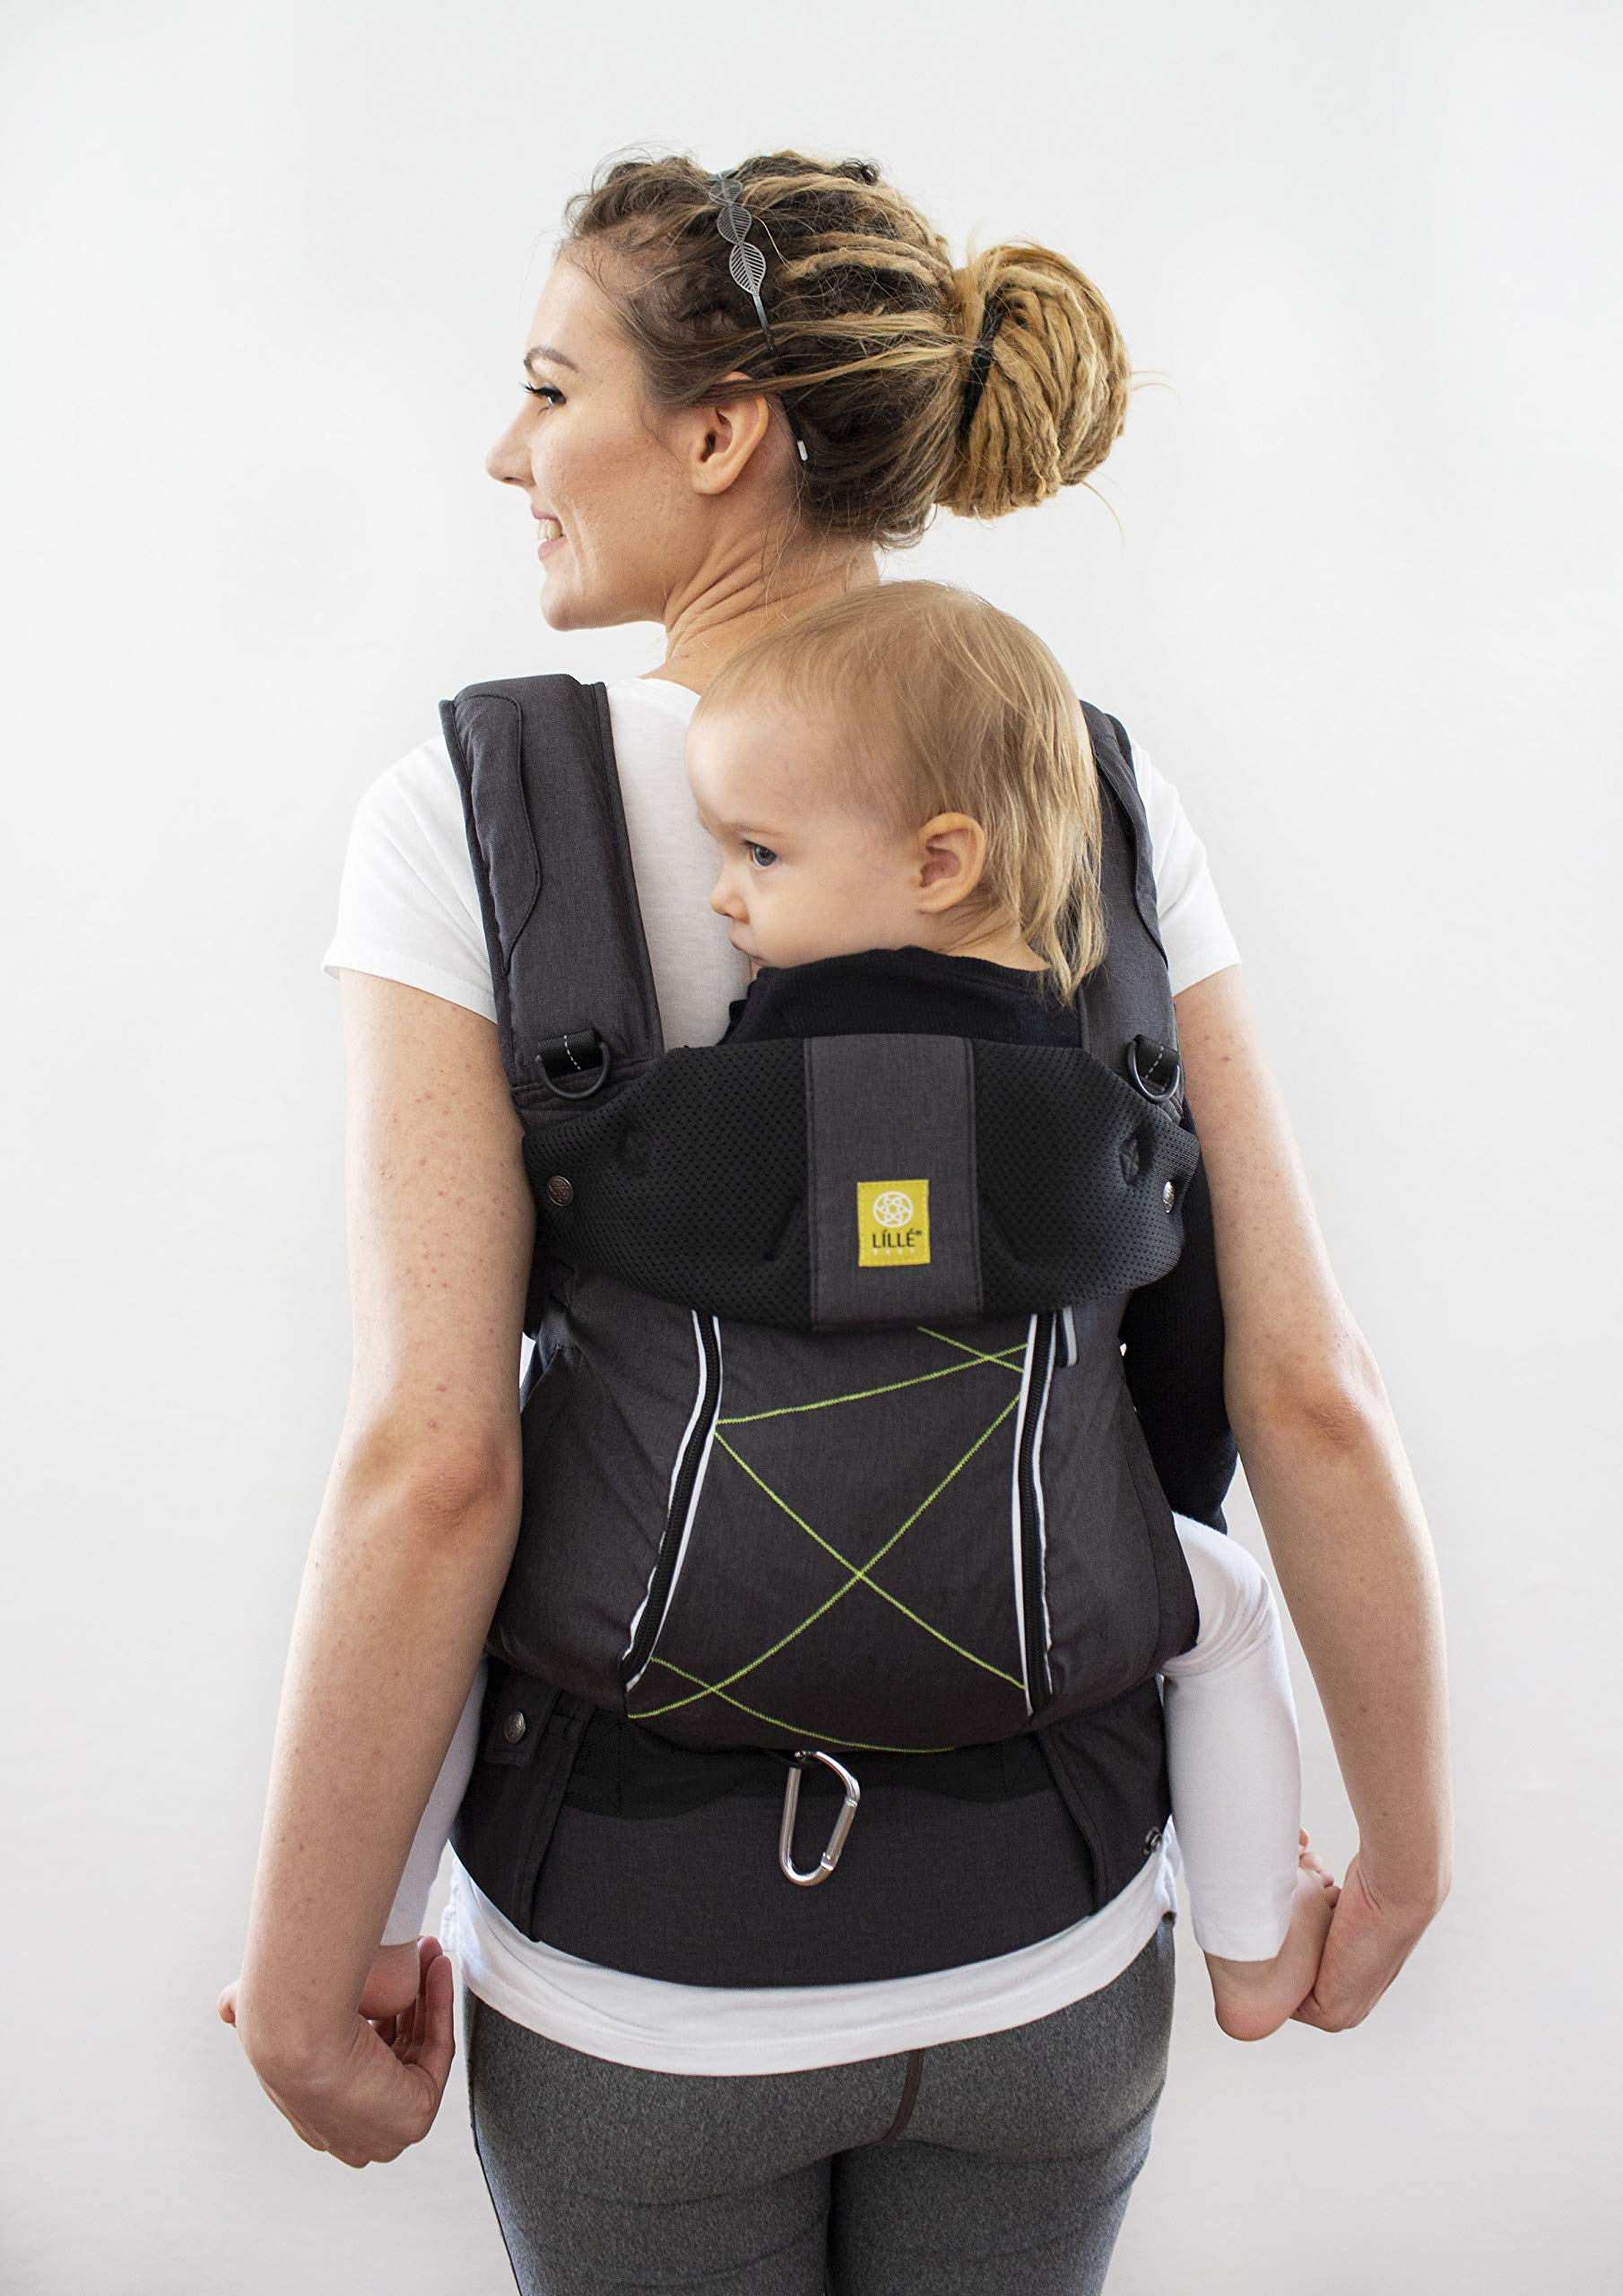 LÍLLÉbaby  Complete Pursuit All Seasons 6-in-1 Baby Carrier, Graphite Lillebaby Designed specifically for parents on the go, our pusuit series combines the comfort and functionality of our 6 in 1 design with adventure-ready features to help you show your little one the world Suitable from 3.2- 20kg extended comfortable use for parent and child with no additional infant support required for new-borns Unique líllébaby lumbar support for the wearer, with wide padded waist belt and shoulder straps 3